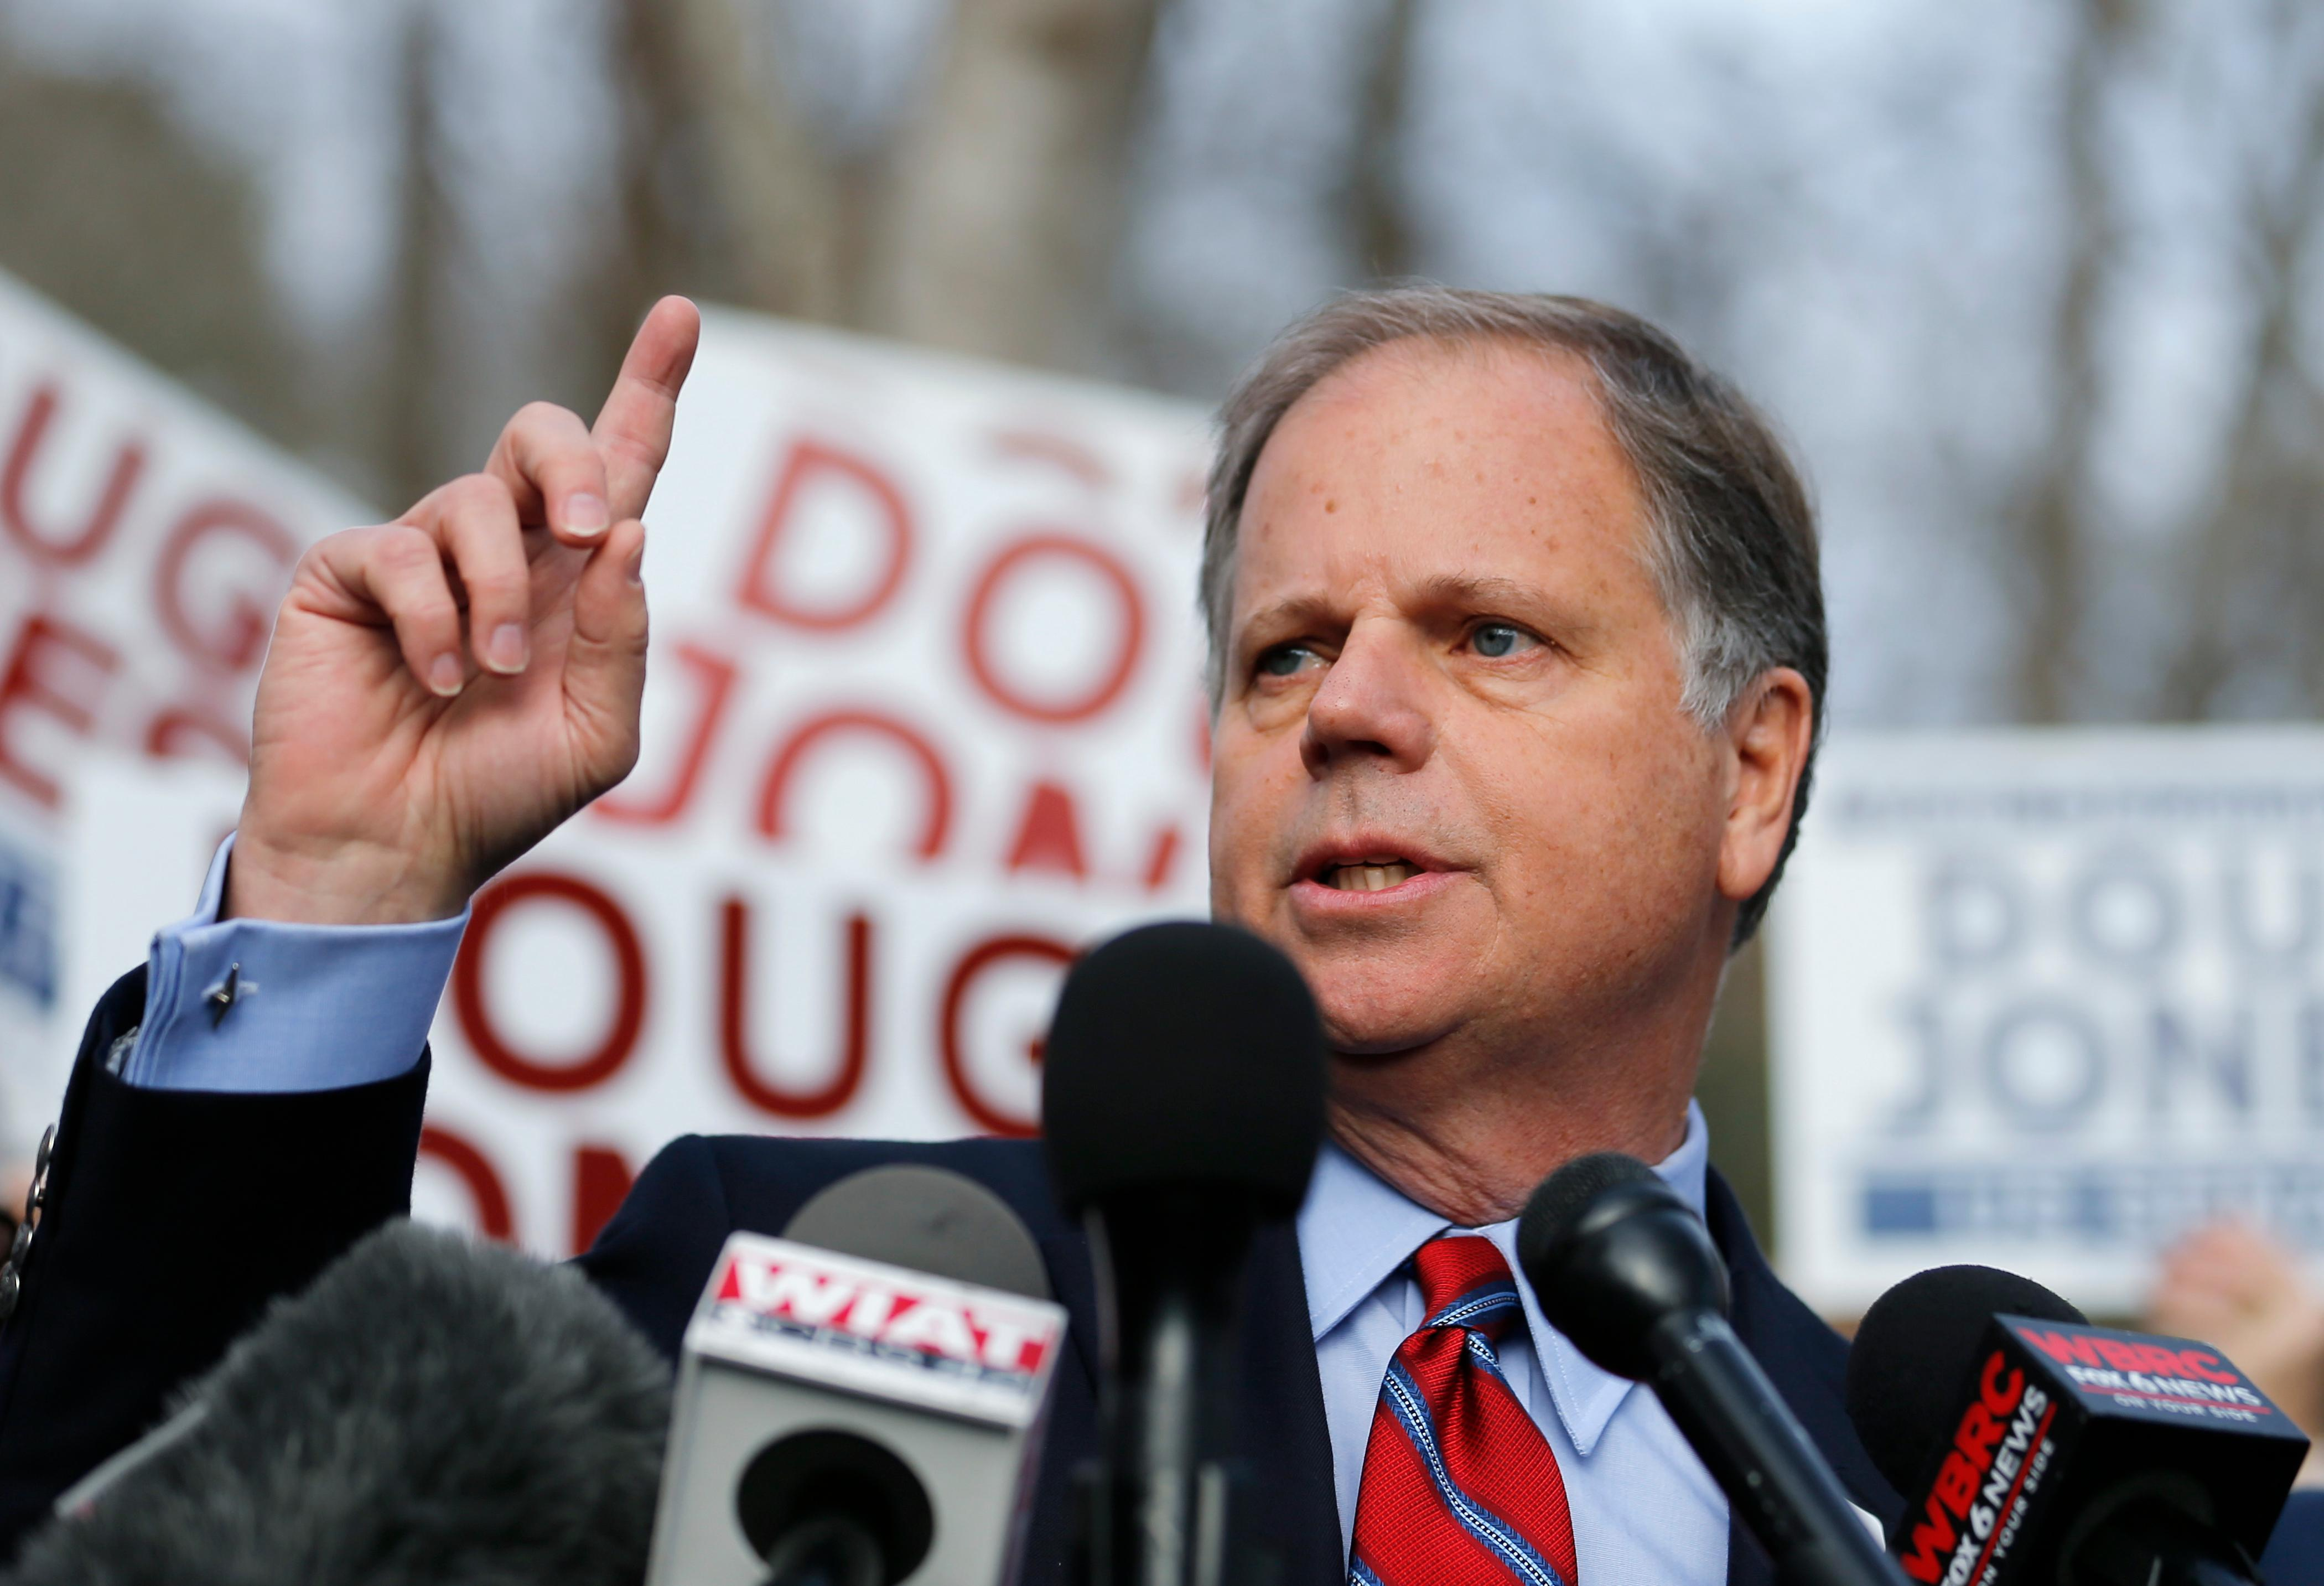 Democratic candidate for U.S. Senate Doug Jones speaks to reporters after casting his ballot Tuesday, Dec. 12, 2017, in Mountain Brook , Ala.  Jones is facing Republican Roy Moore. (AP Photo/John Bazemore)